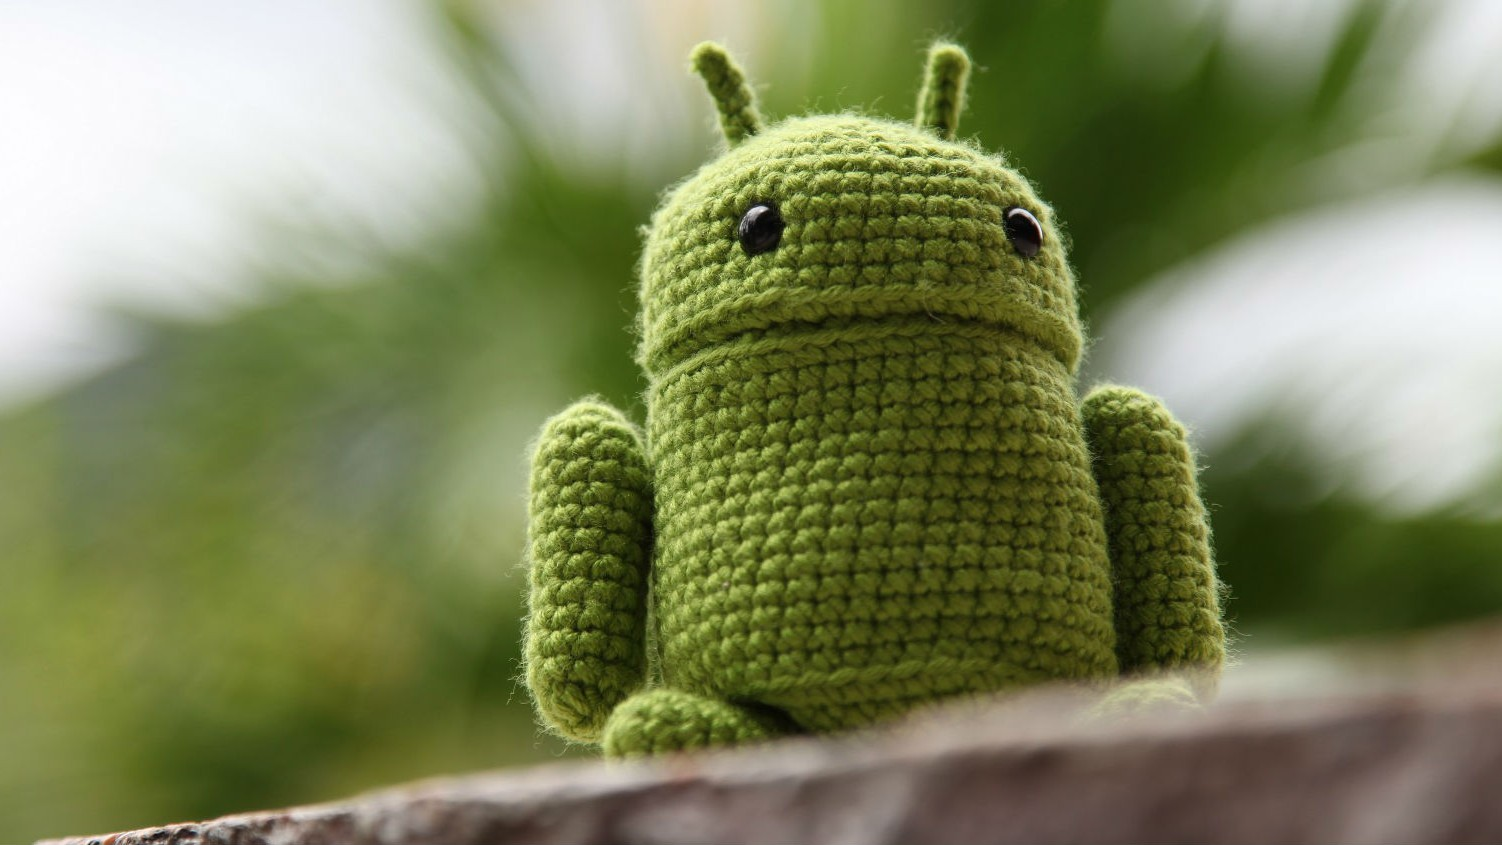 These Bugs Could Leave 950 Million Android Devices Vulnerable to Hackers